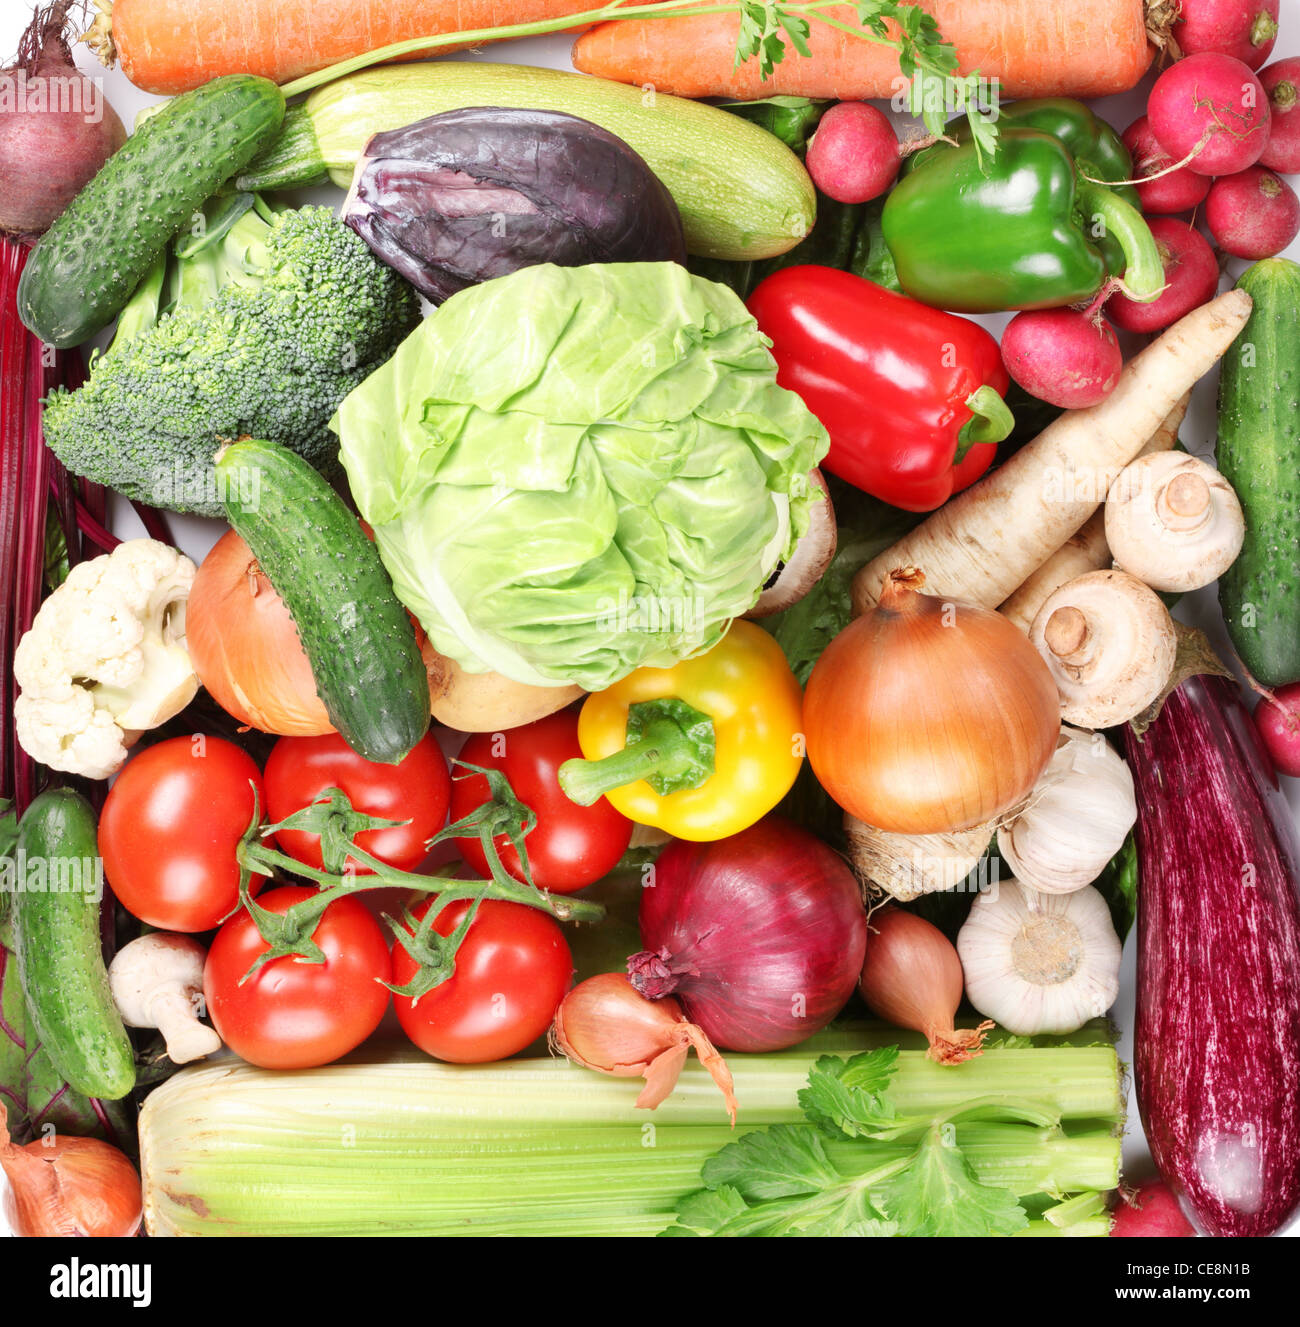 Plenty of vegetables occupy the entire frame. - Stock Image